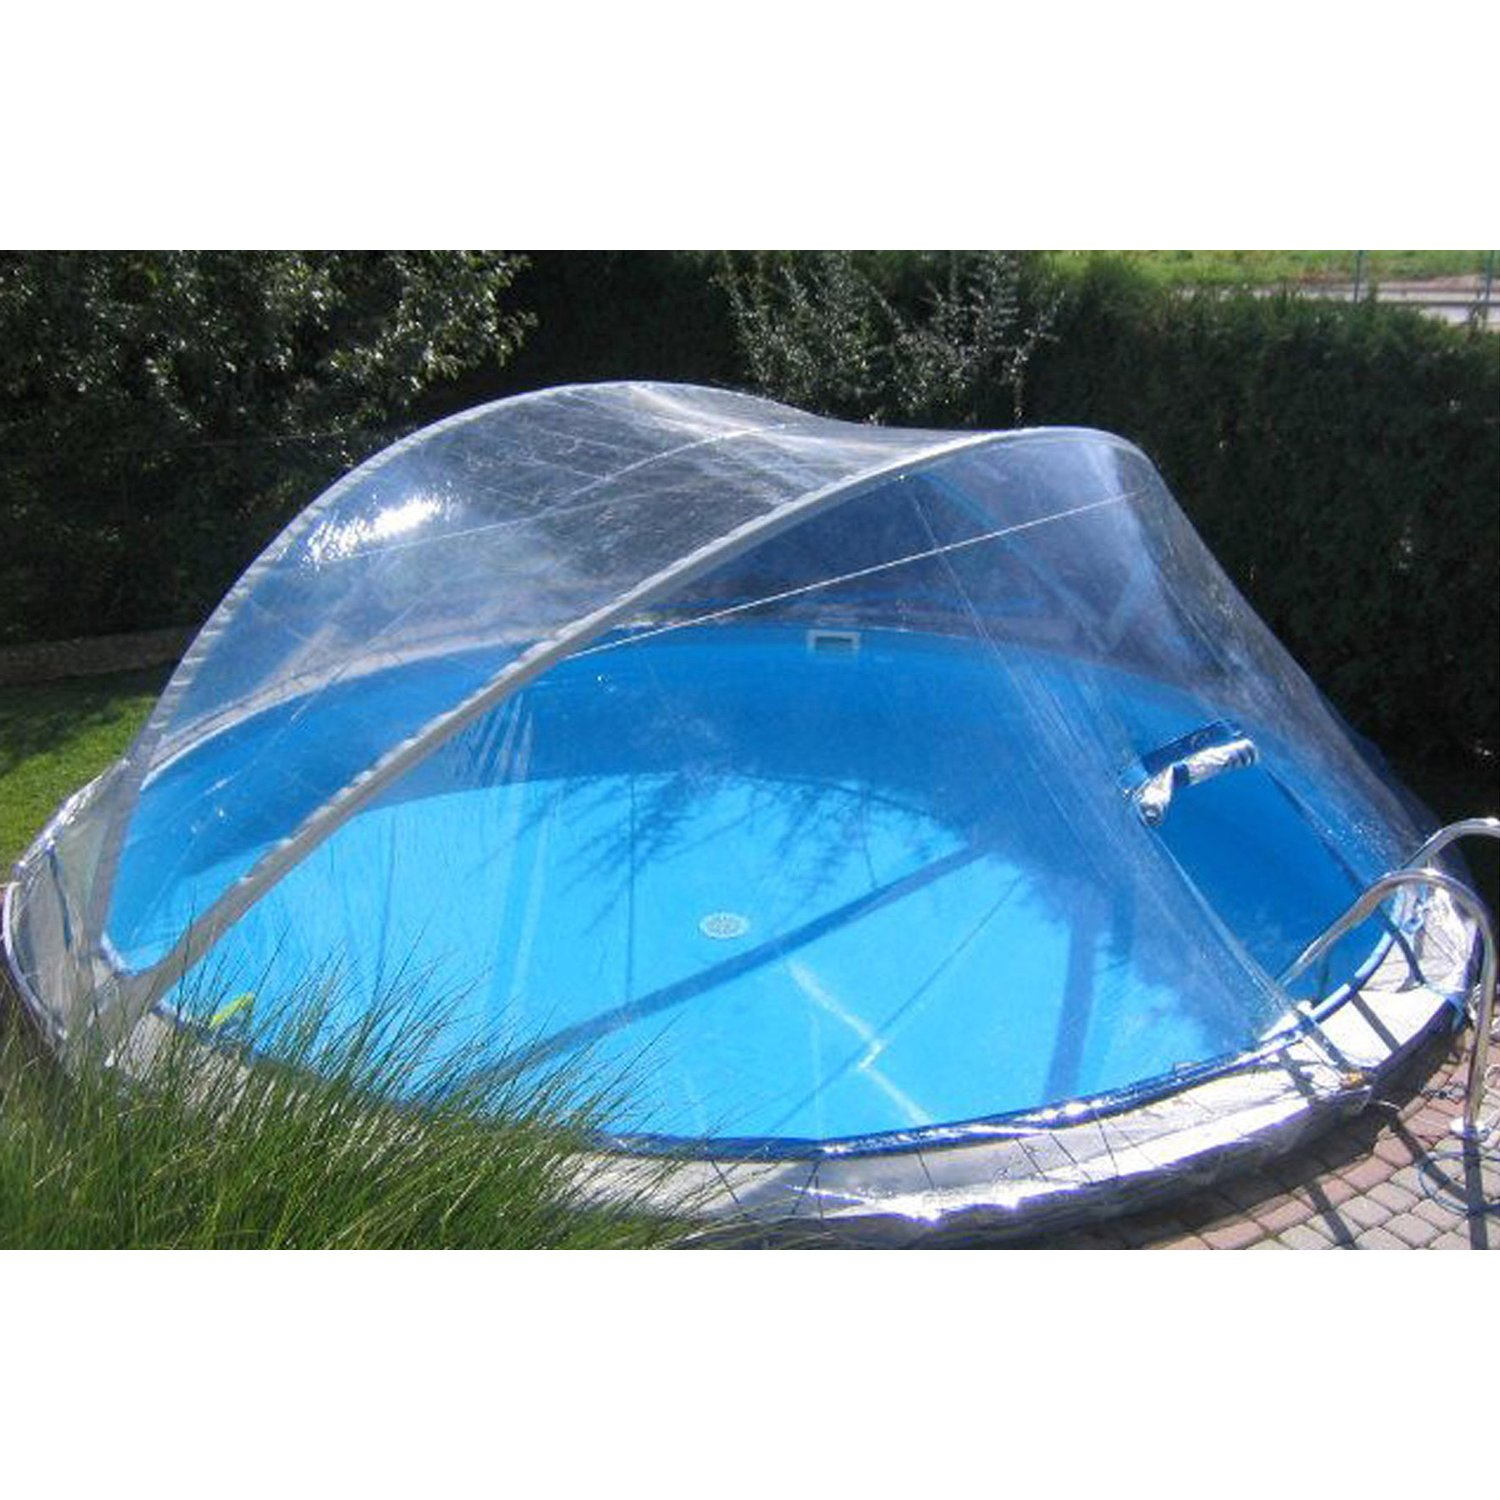 Full Size of Summer Fun Pool Berdachung Cabrio Dome Fr Ovalbecken 320 Cm X Garten Guenstig Kaufen Mini Mobile Küche Swimmingpool Whirlpool Schwimmingpool Für Den Wohnzimmer Obi Pool